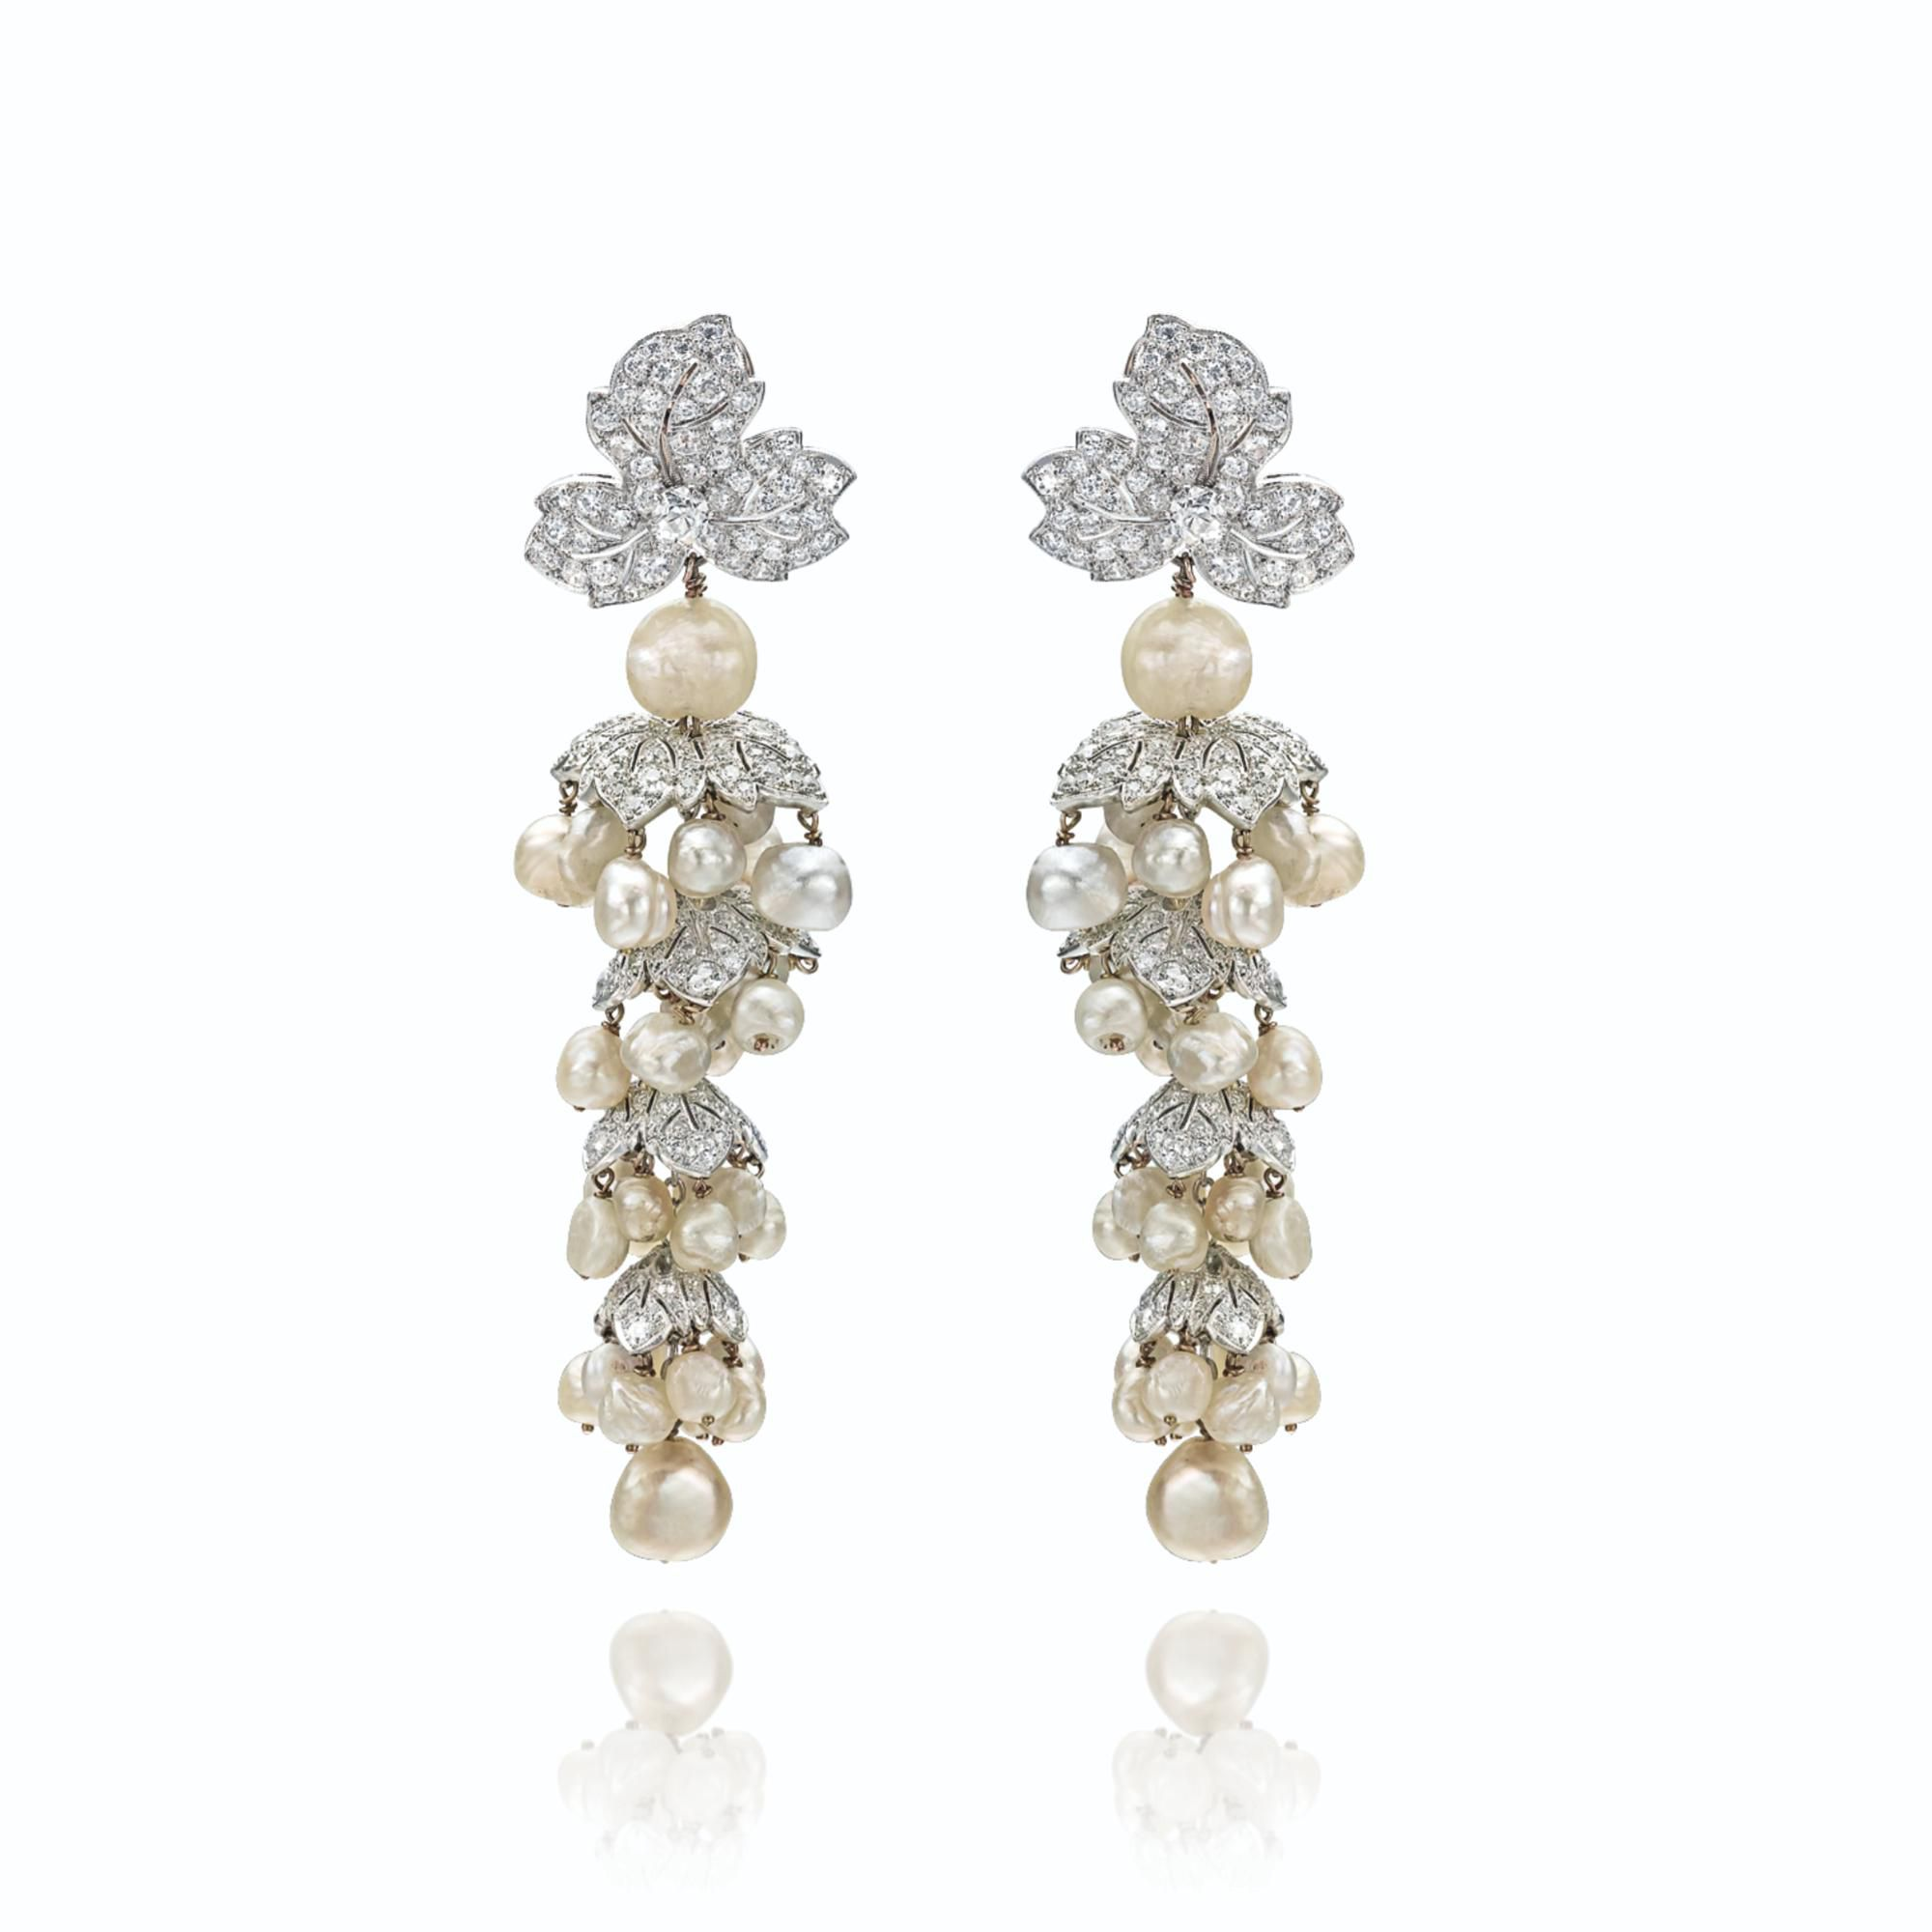 Pair of diamond and pearl pendant earclips | lot | Sotheby's